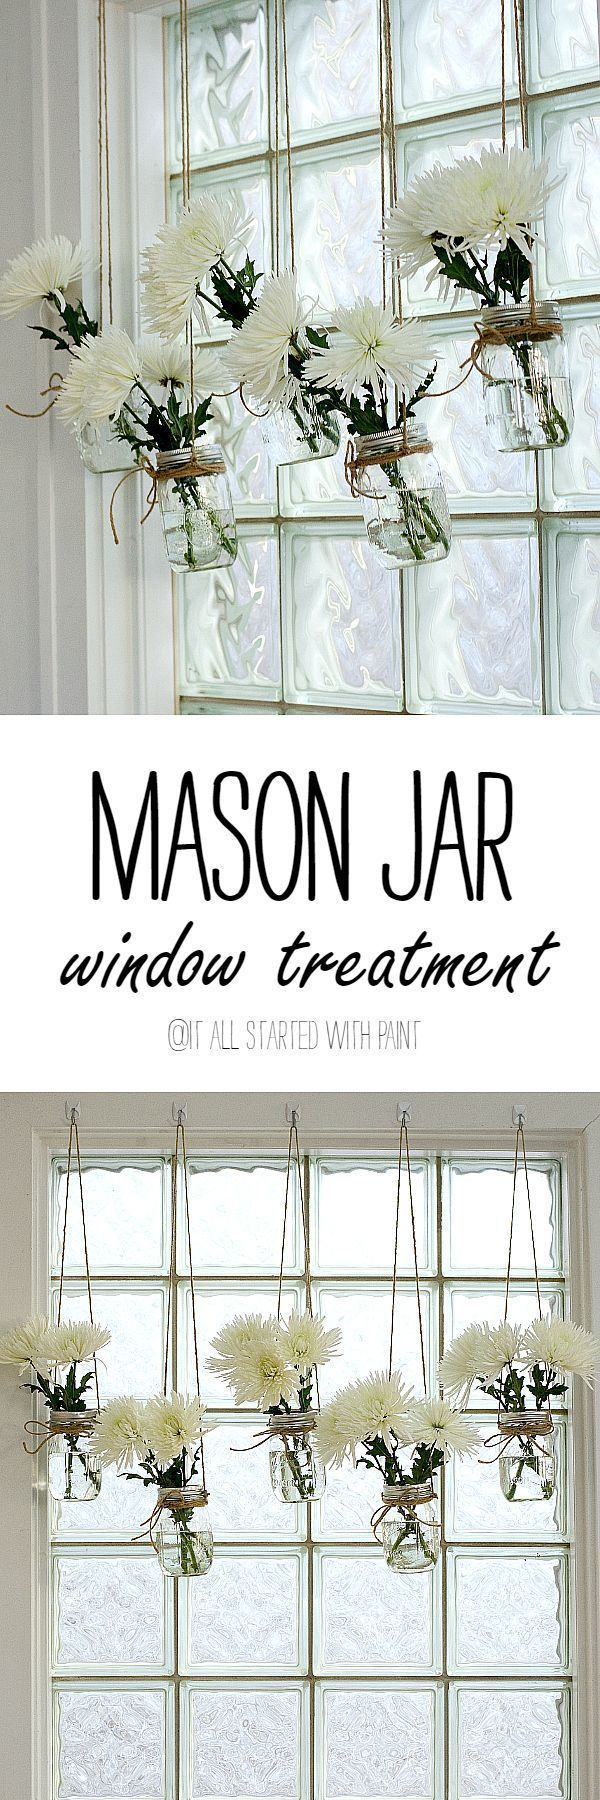 cool mason jar window treatment - It All Started With Paint by http://www.best-100-home-decorpictures.us/decorating-ideas/mason-jar-window-treatment-it-all-started-with-paint/